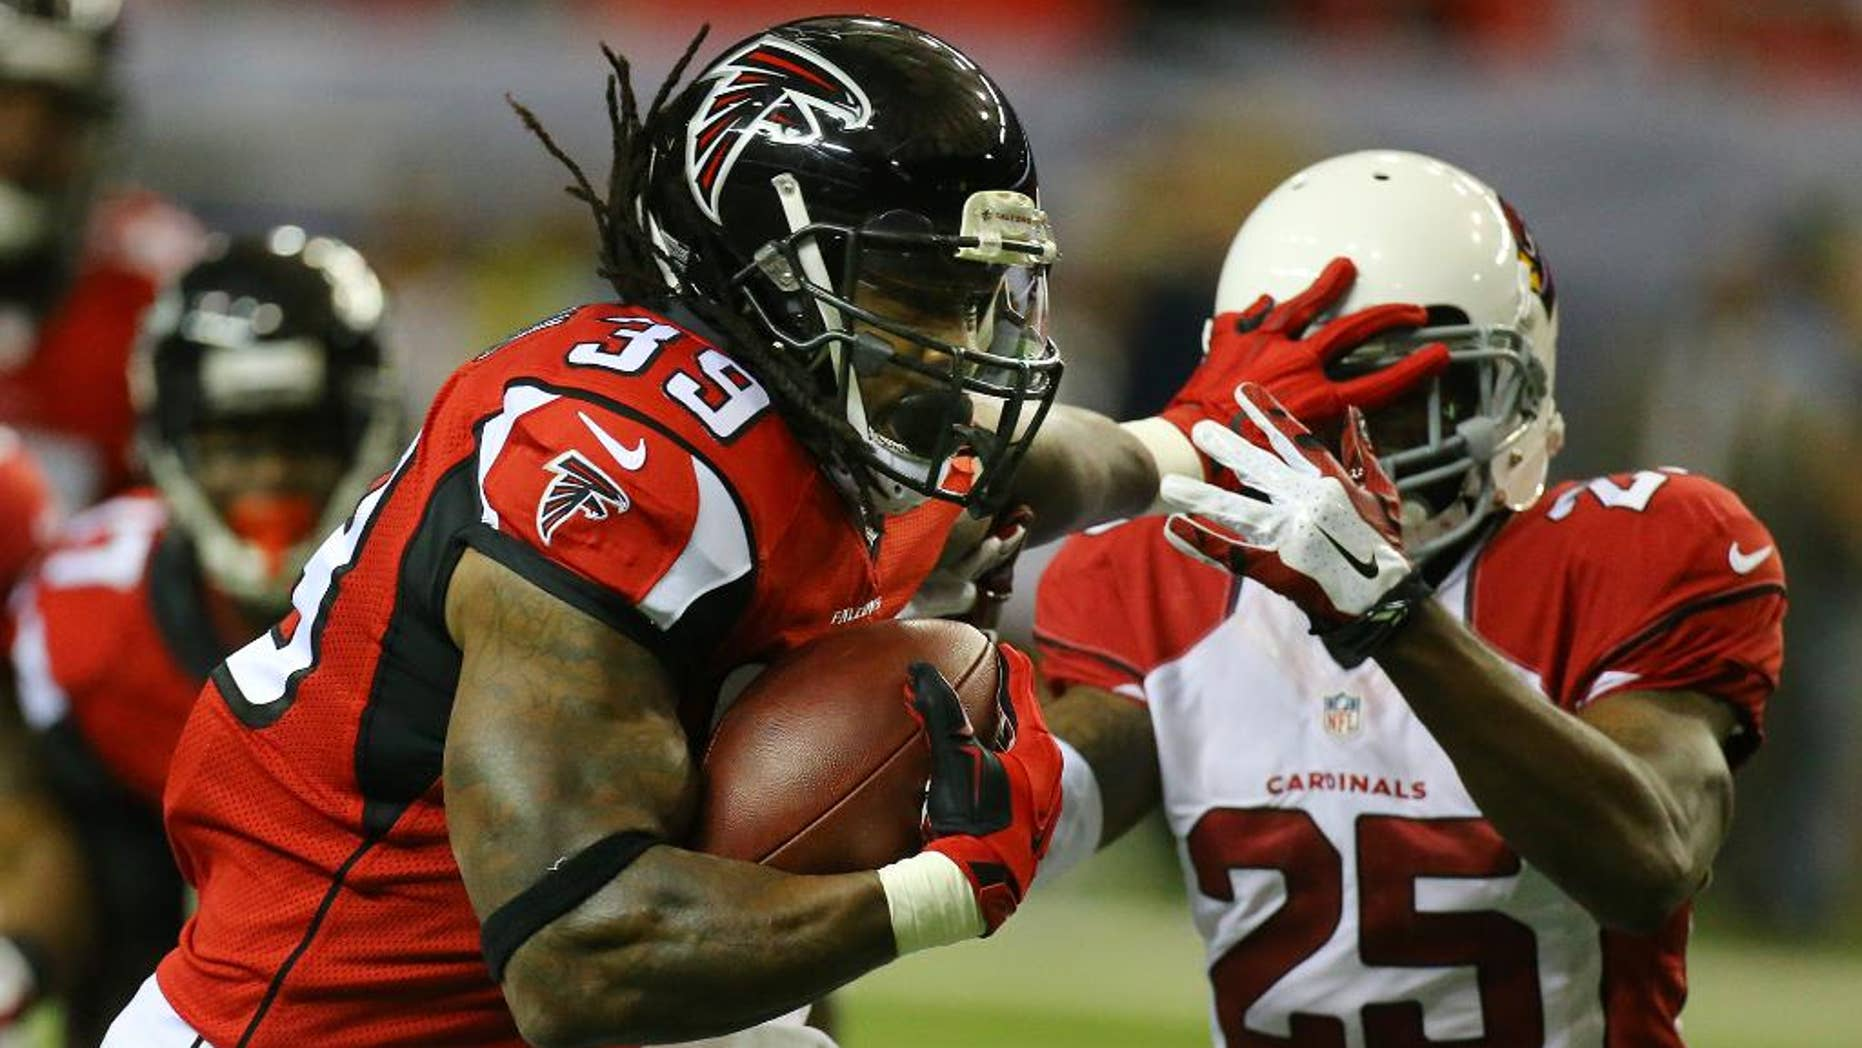 Falcons running back Steven Jackson stiff arms Cardinals Jerraud Powers breaking away for a 50-plus yard run setting up a Falcons touchdown on the opening drive during the first quarter in an NFL football game on Sunday, Nov. 30, 2014, in Atlanta. (AP Photo/Atlanta Journal-Constitution, Curtis Compton)